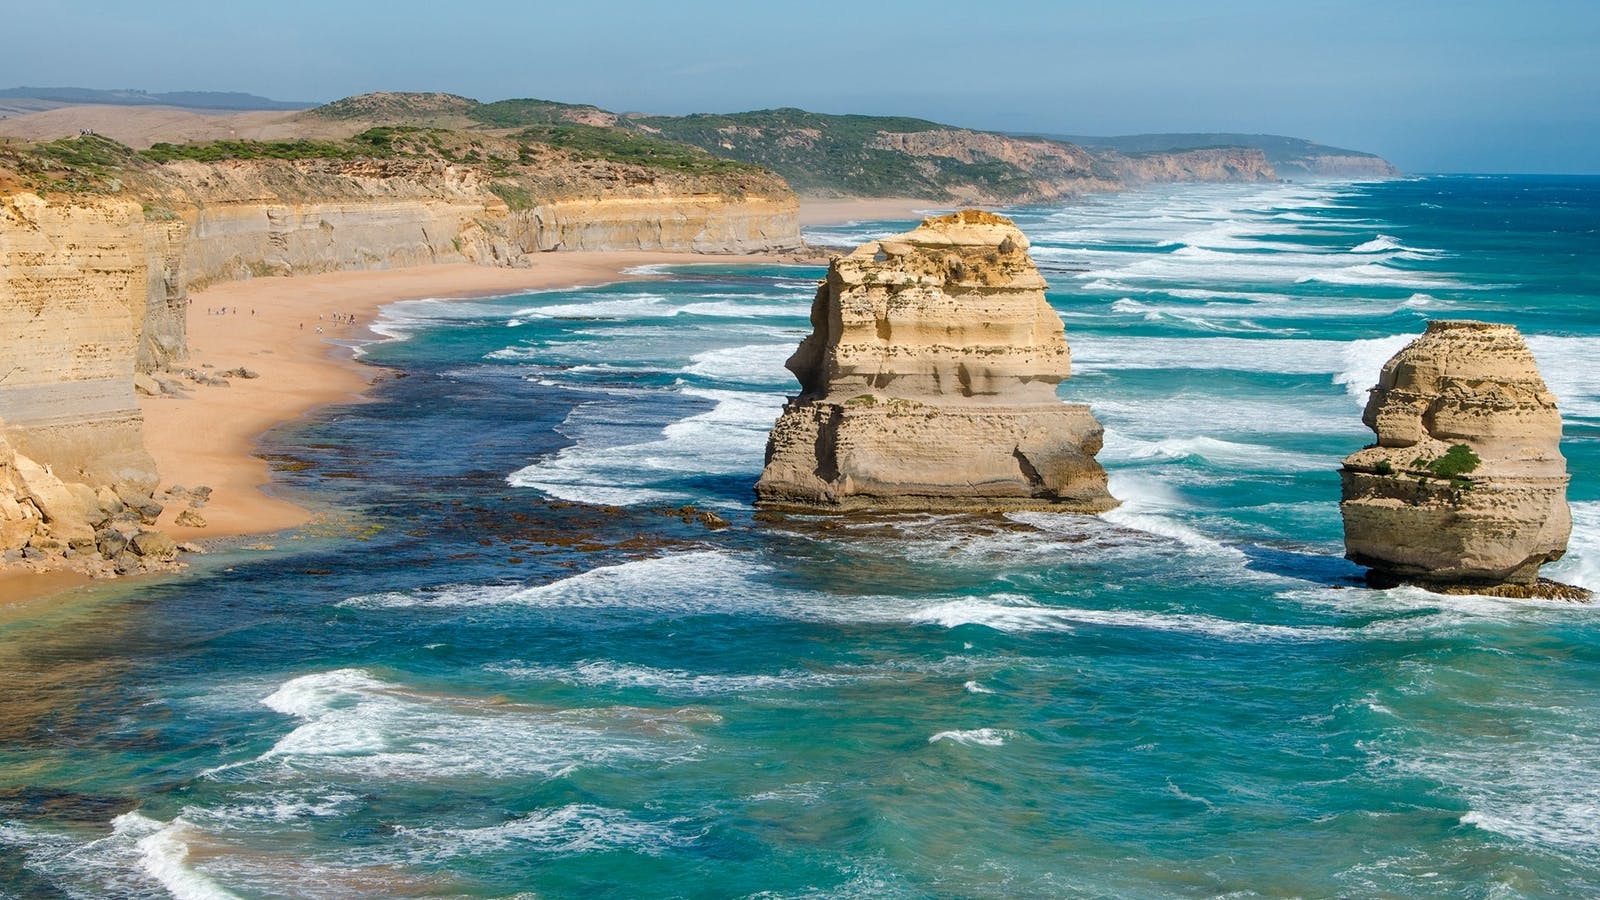 See the spectacular 12 Apostles limestone rock formations on the Great Ocean Road